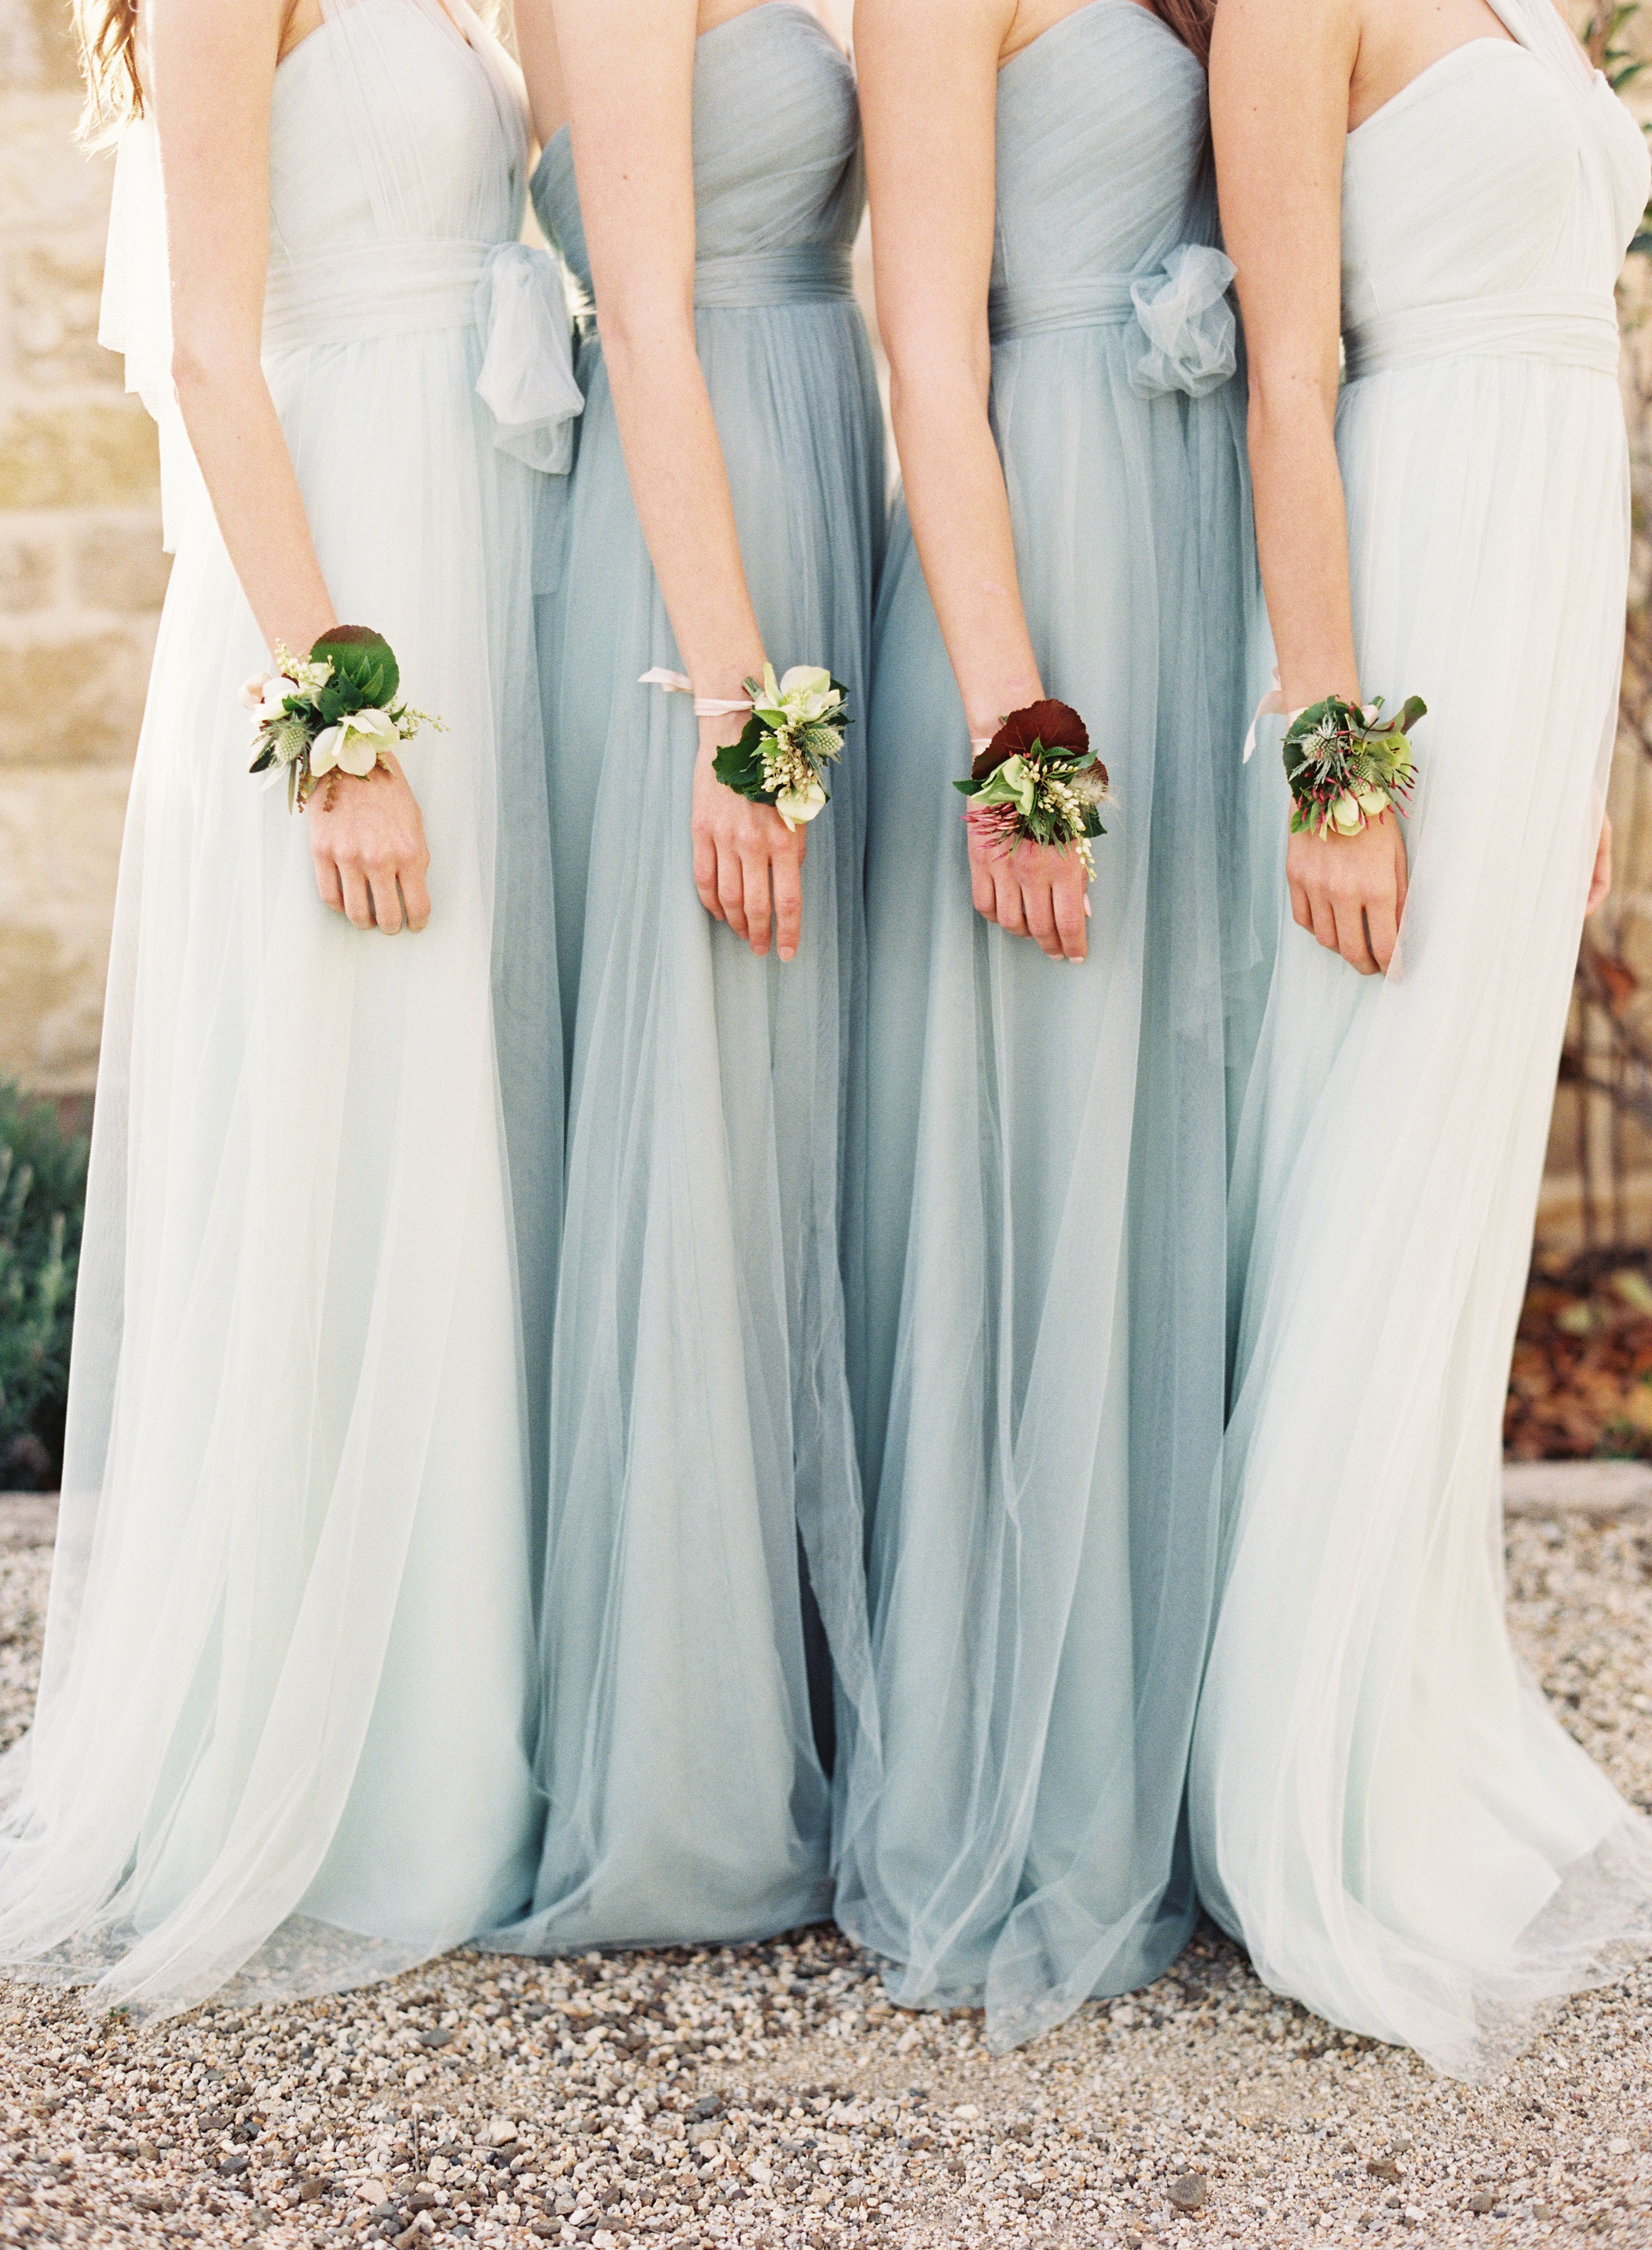 Annabelle convertible dresses in spearmint sea glass tulle by annabelle convertible dresses in spearmint sea glass tulle by jennyyoo photography bridesmaid ombrellifo Images